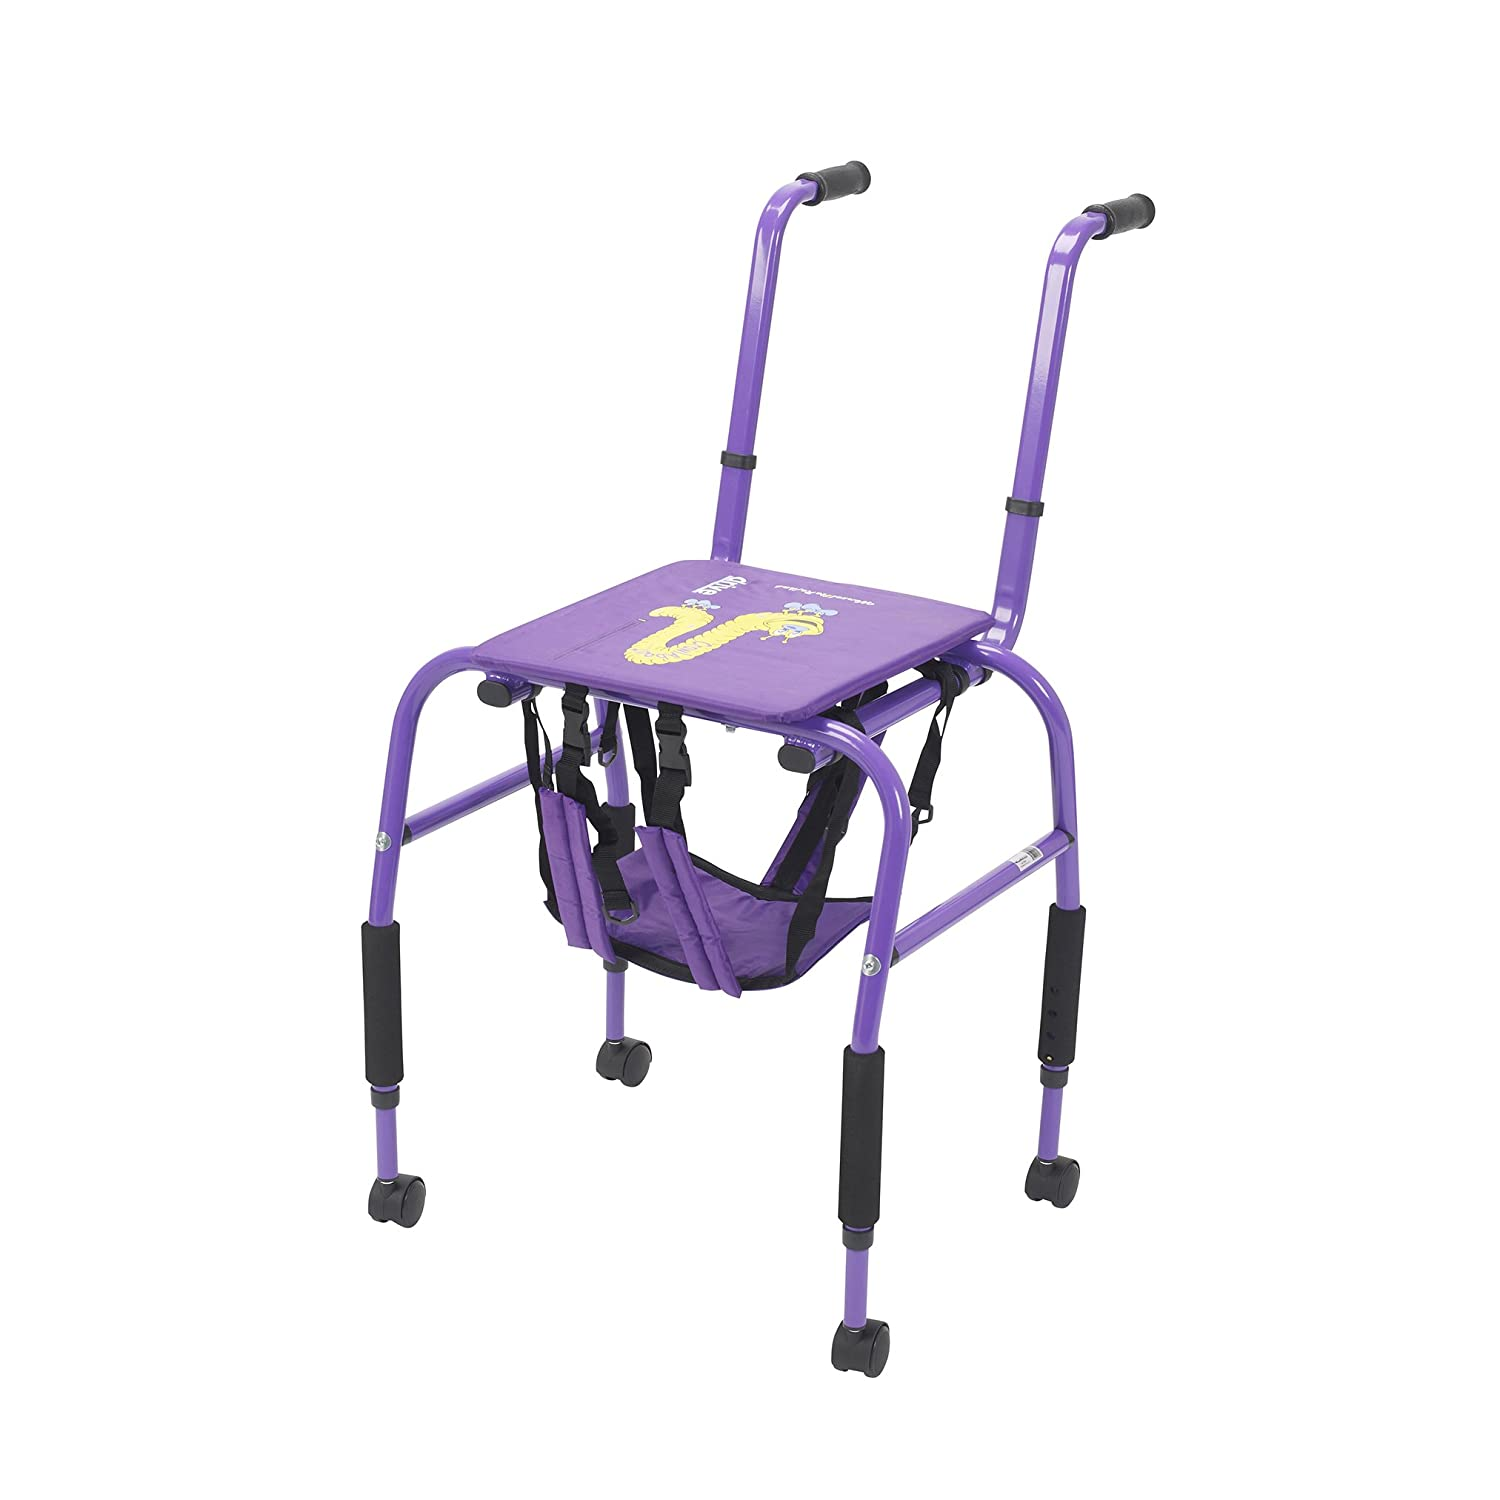 Wenzelite Crawlabout Rehab Crawl Trainer, Purple, Small